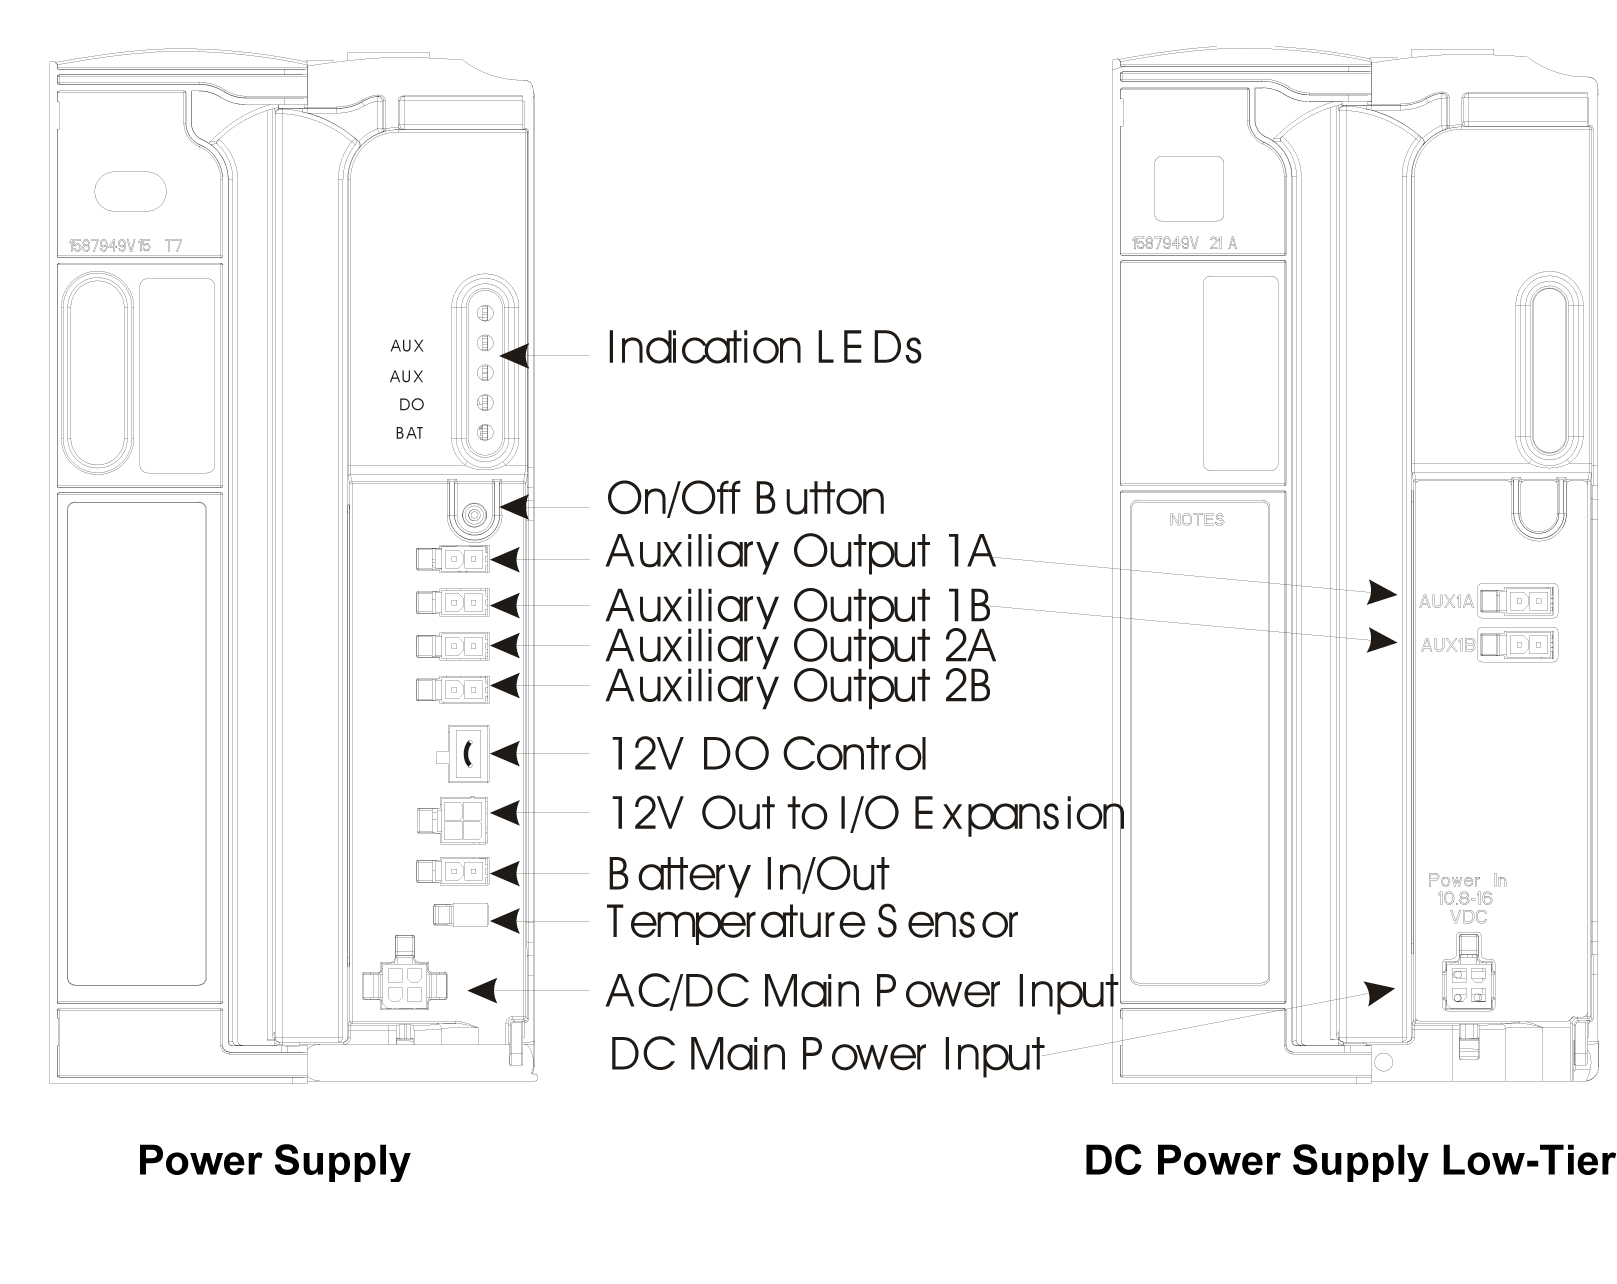 ACE3600 Power Supply - Front Panel